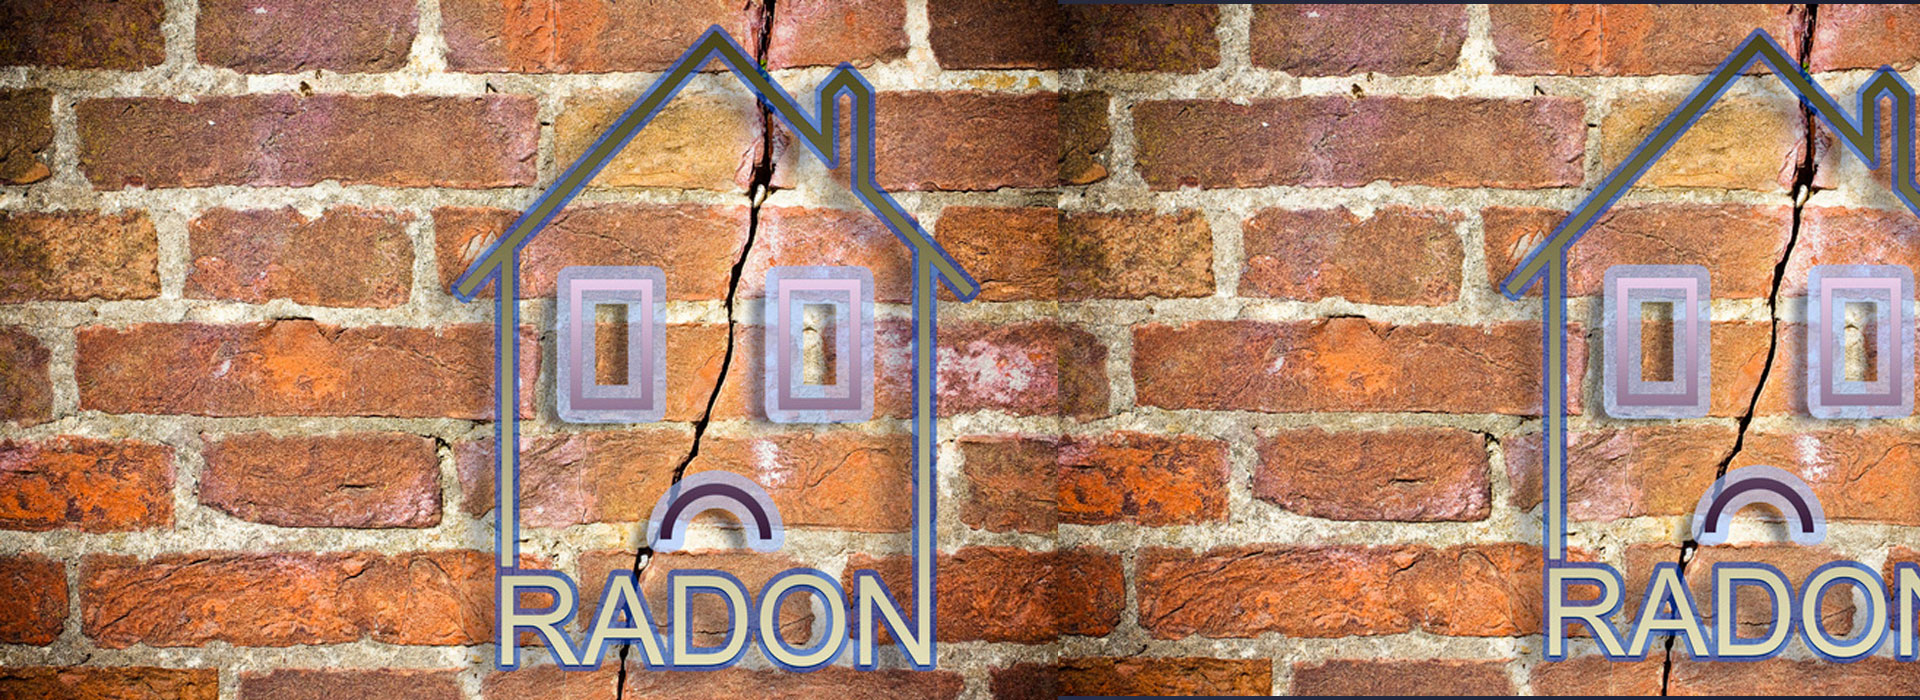 Elevated Radon Levels? Don't Panic! May 19th